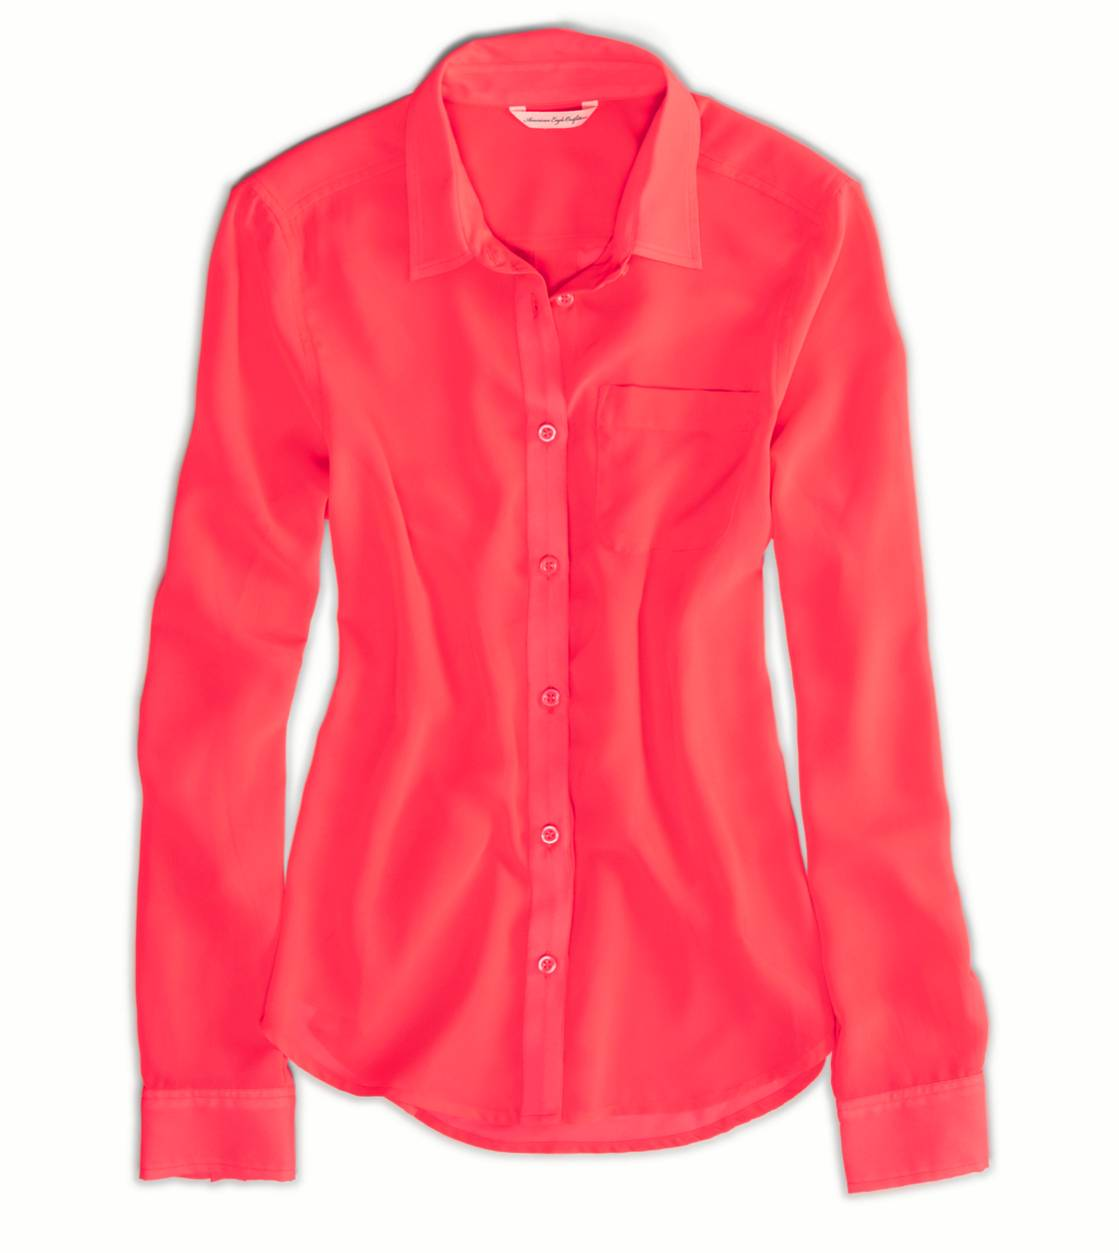 Neon Flame AE Sheer Chiffon Shirt